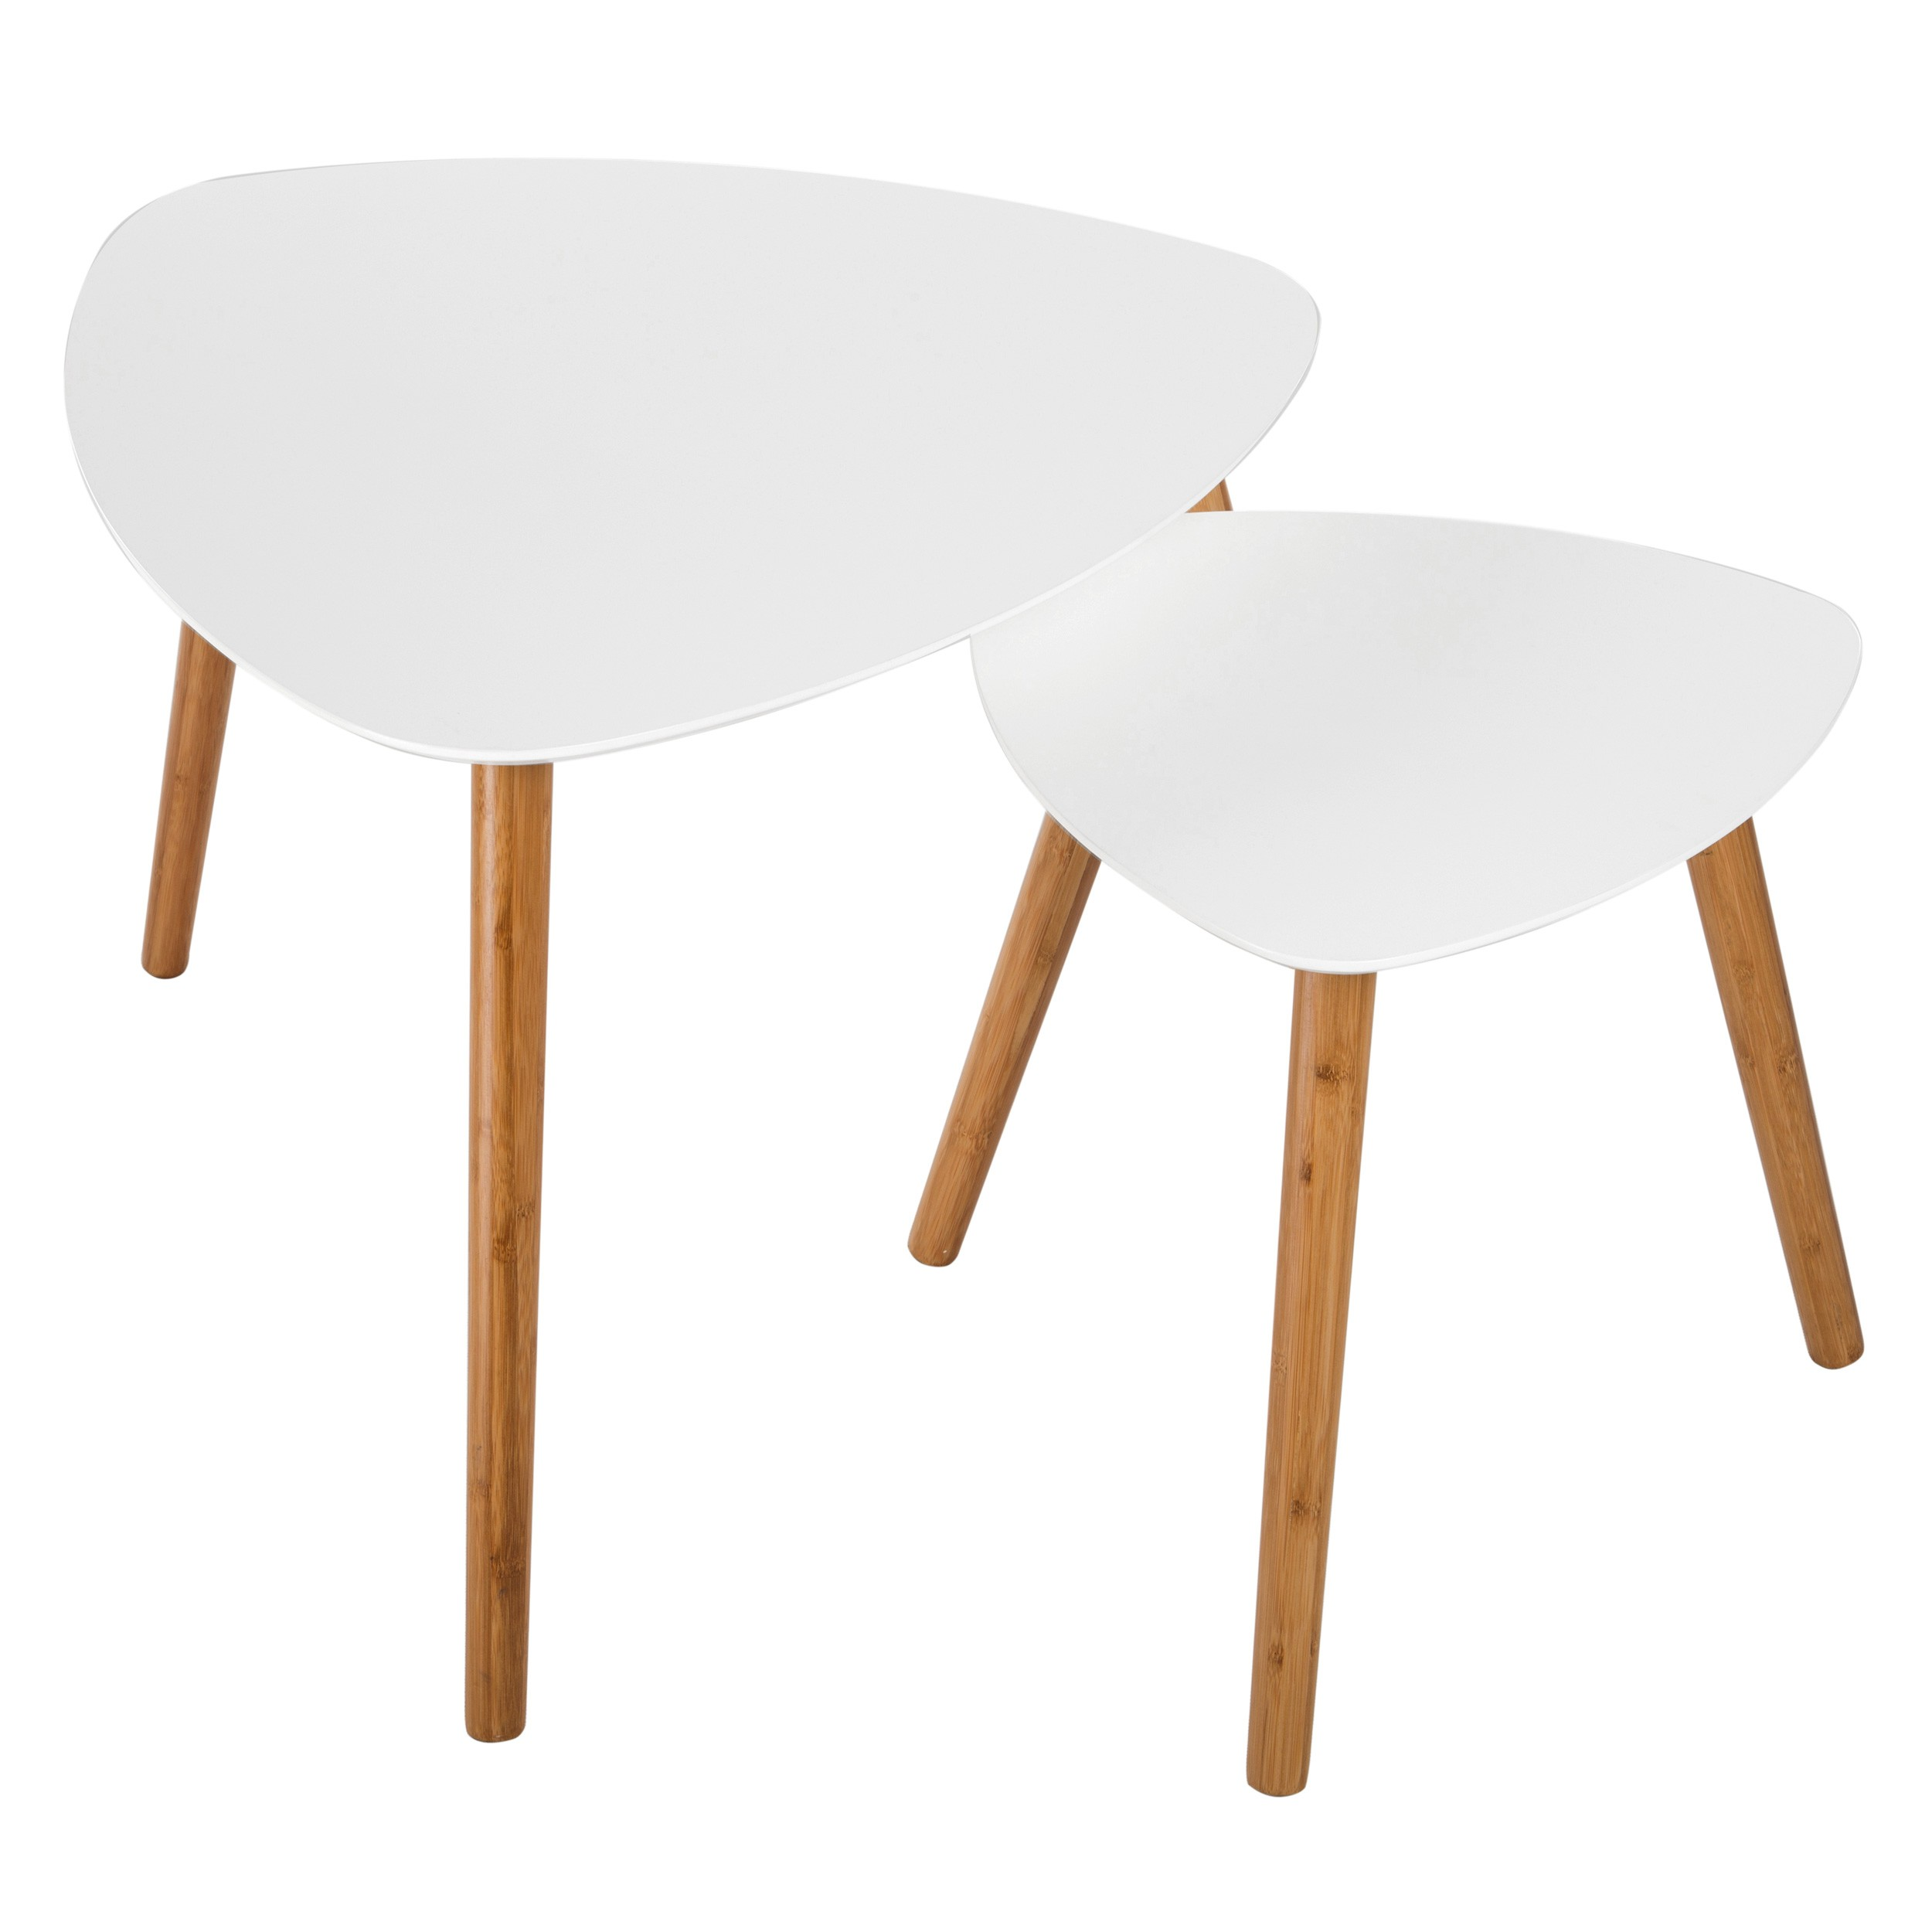 Table Basse Duo Scandinave Pearlfection Fr